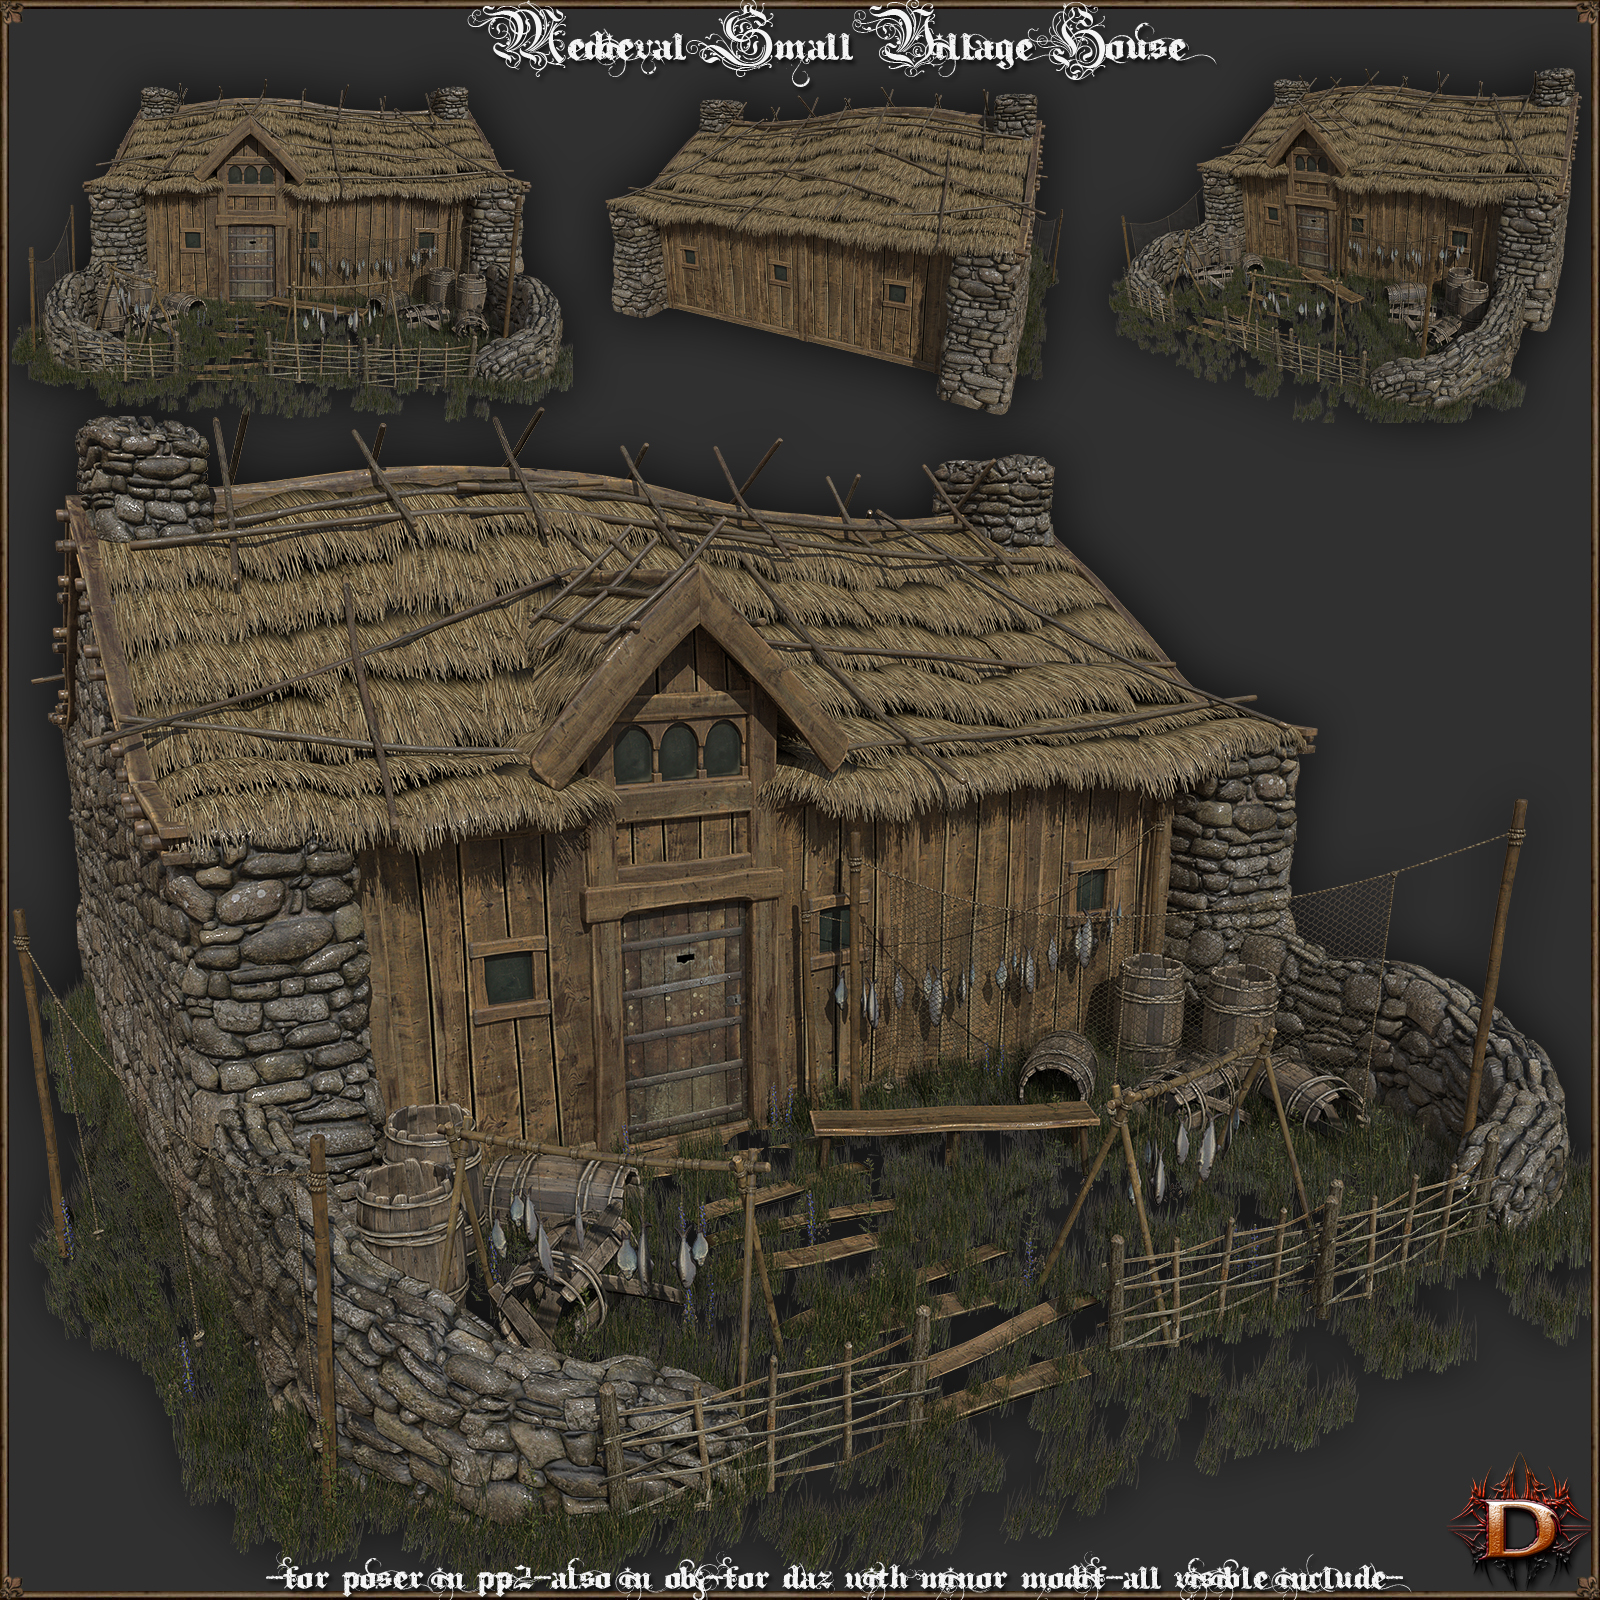 Medieval Small Village House1 by Dante78